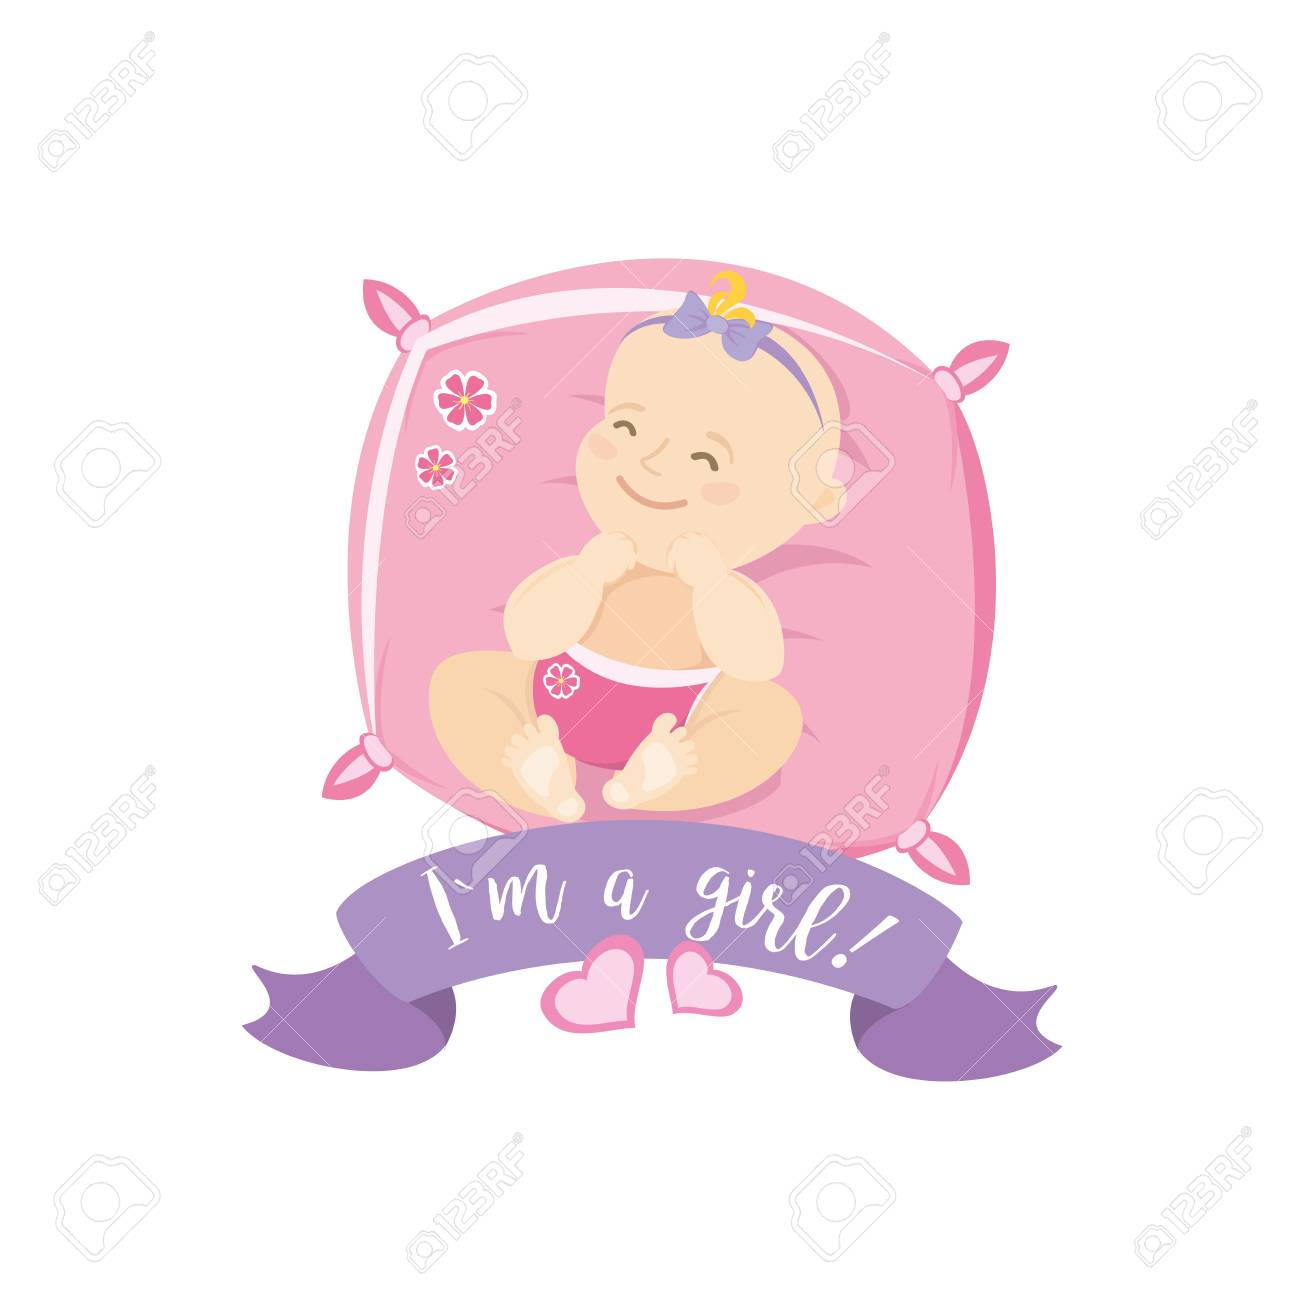 Newborn Baby Girl Cartoon Card Vector Illustration Royalty Free Cliparts Vectors And Stock Illustration Image 92823915